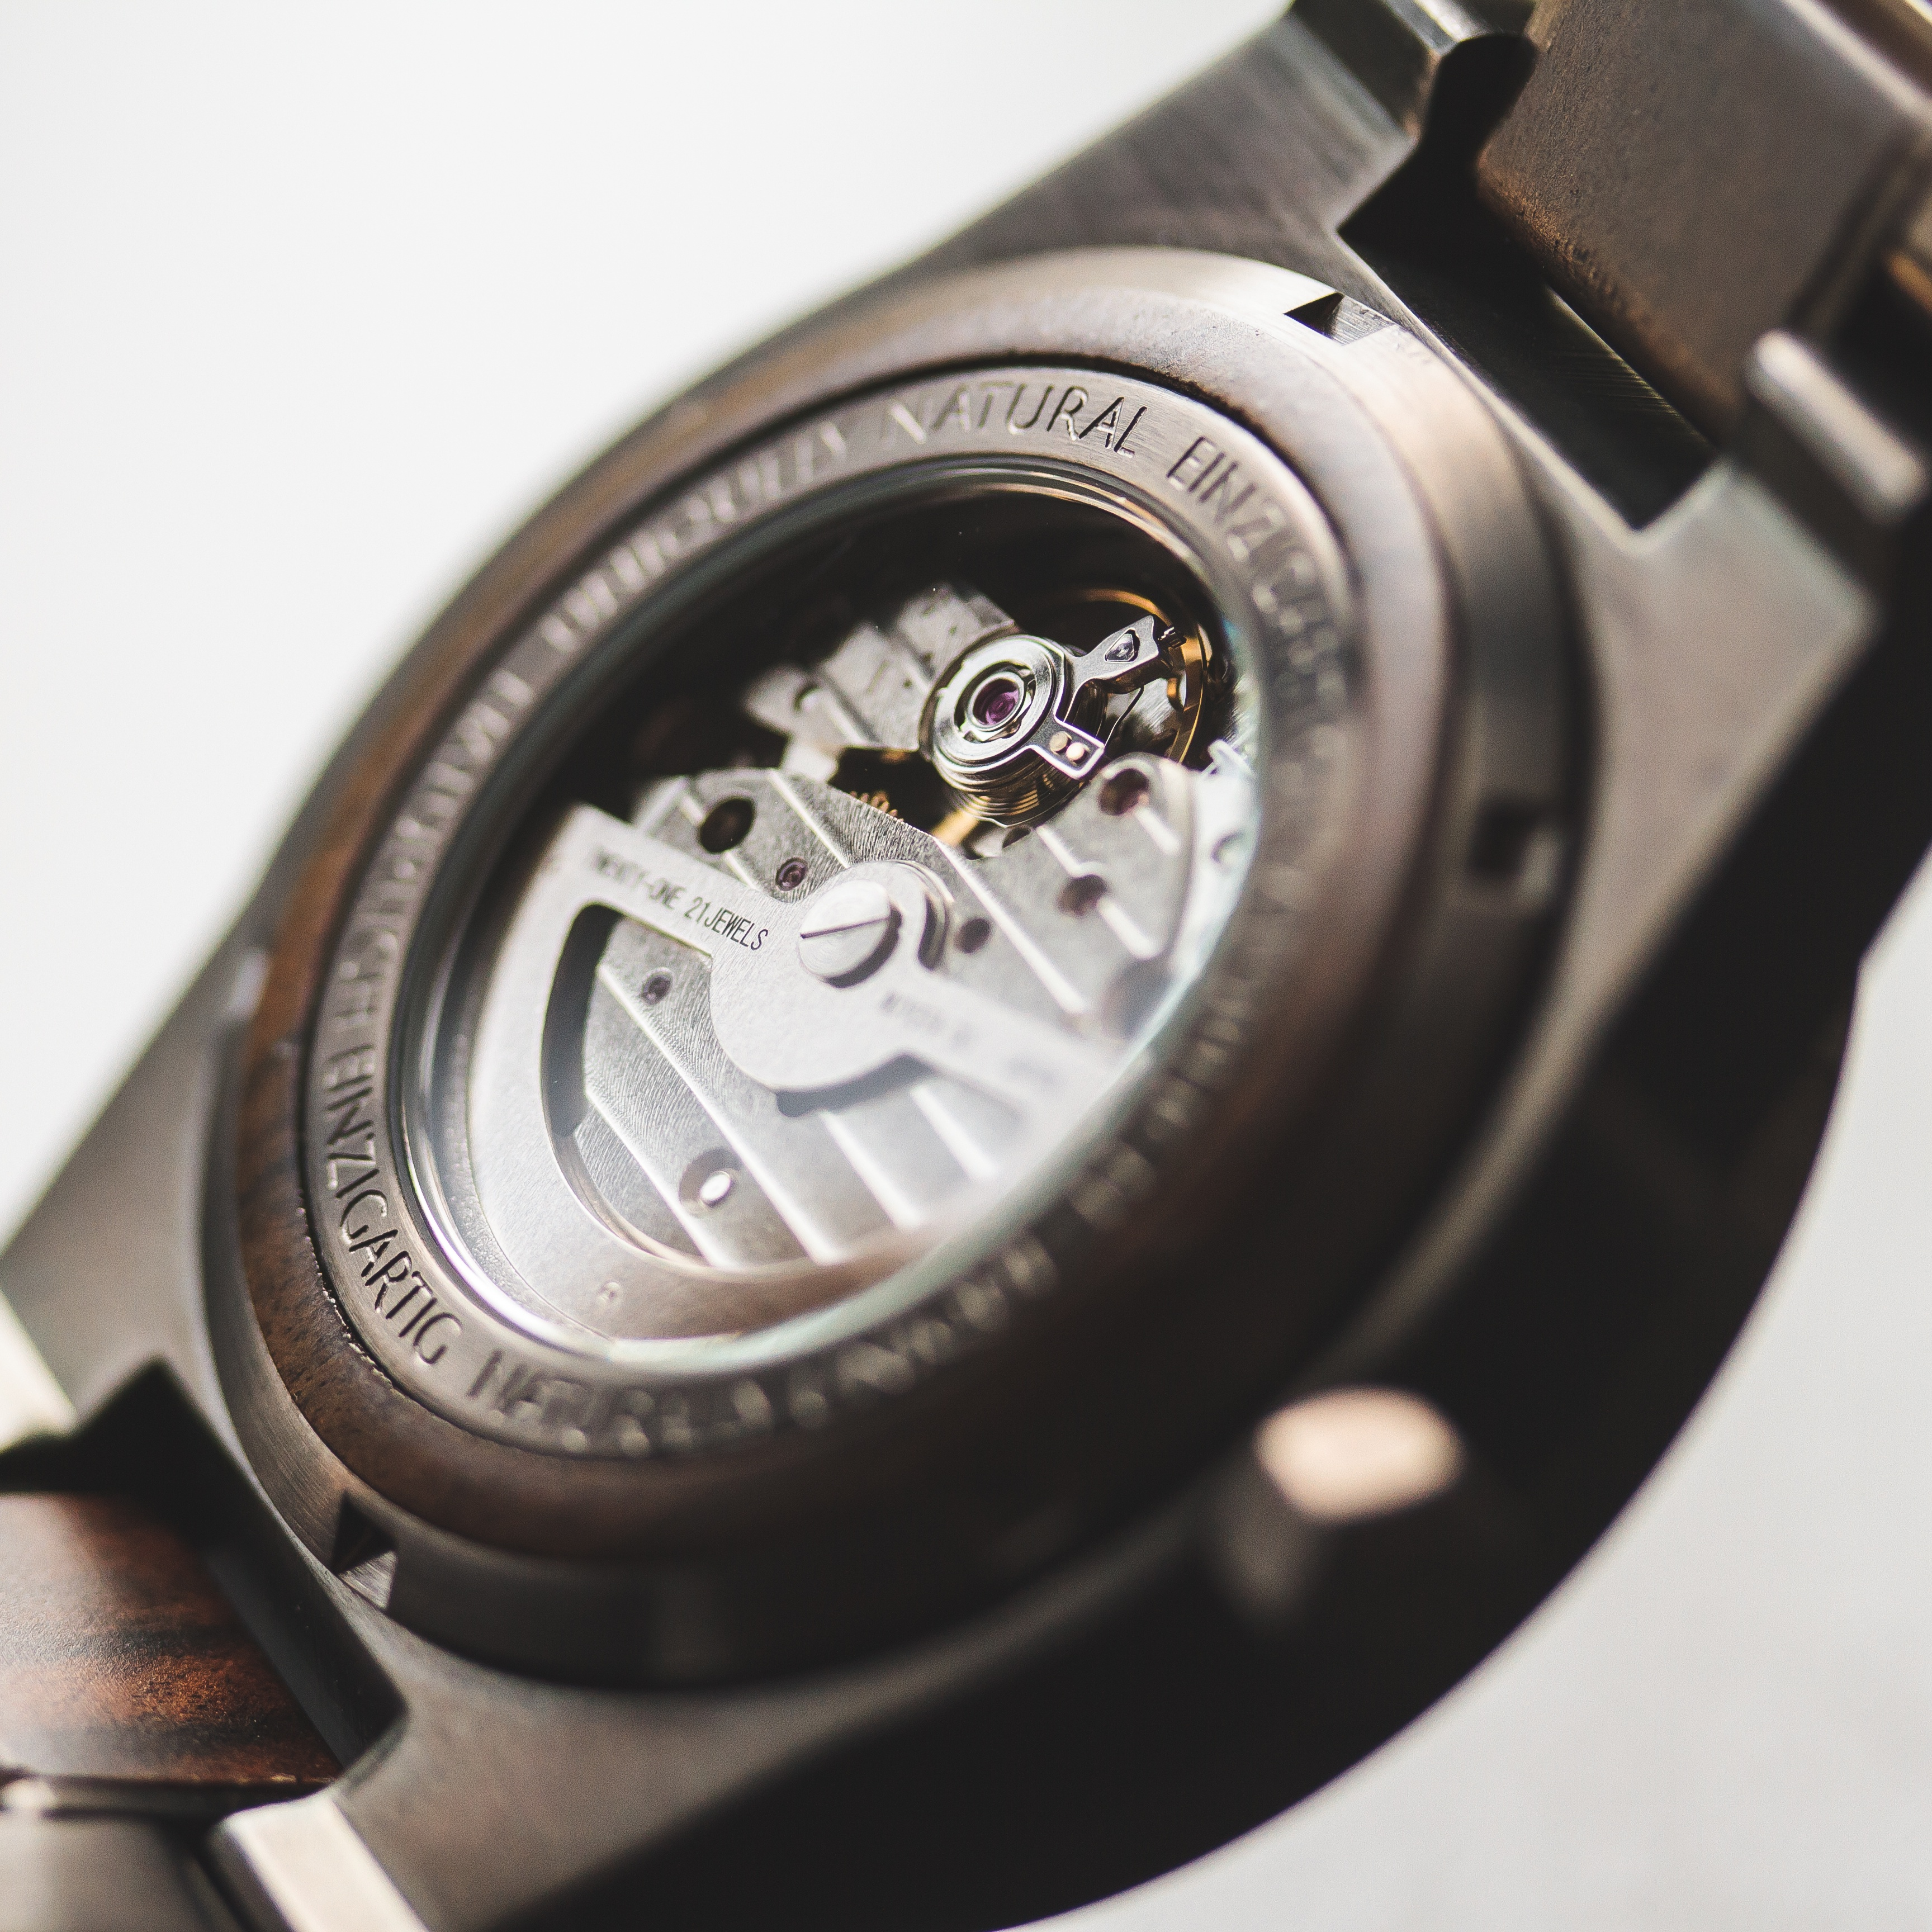 Automatic Watches 7 IT